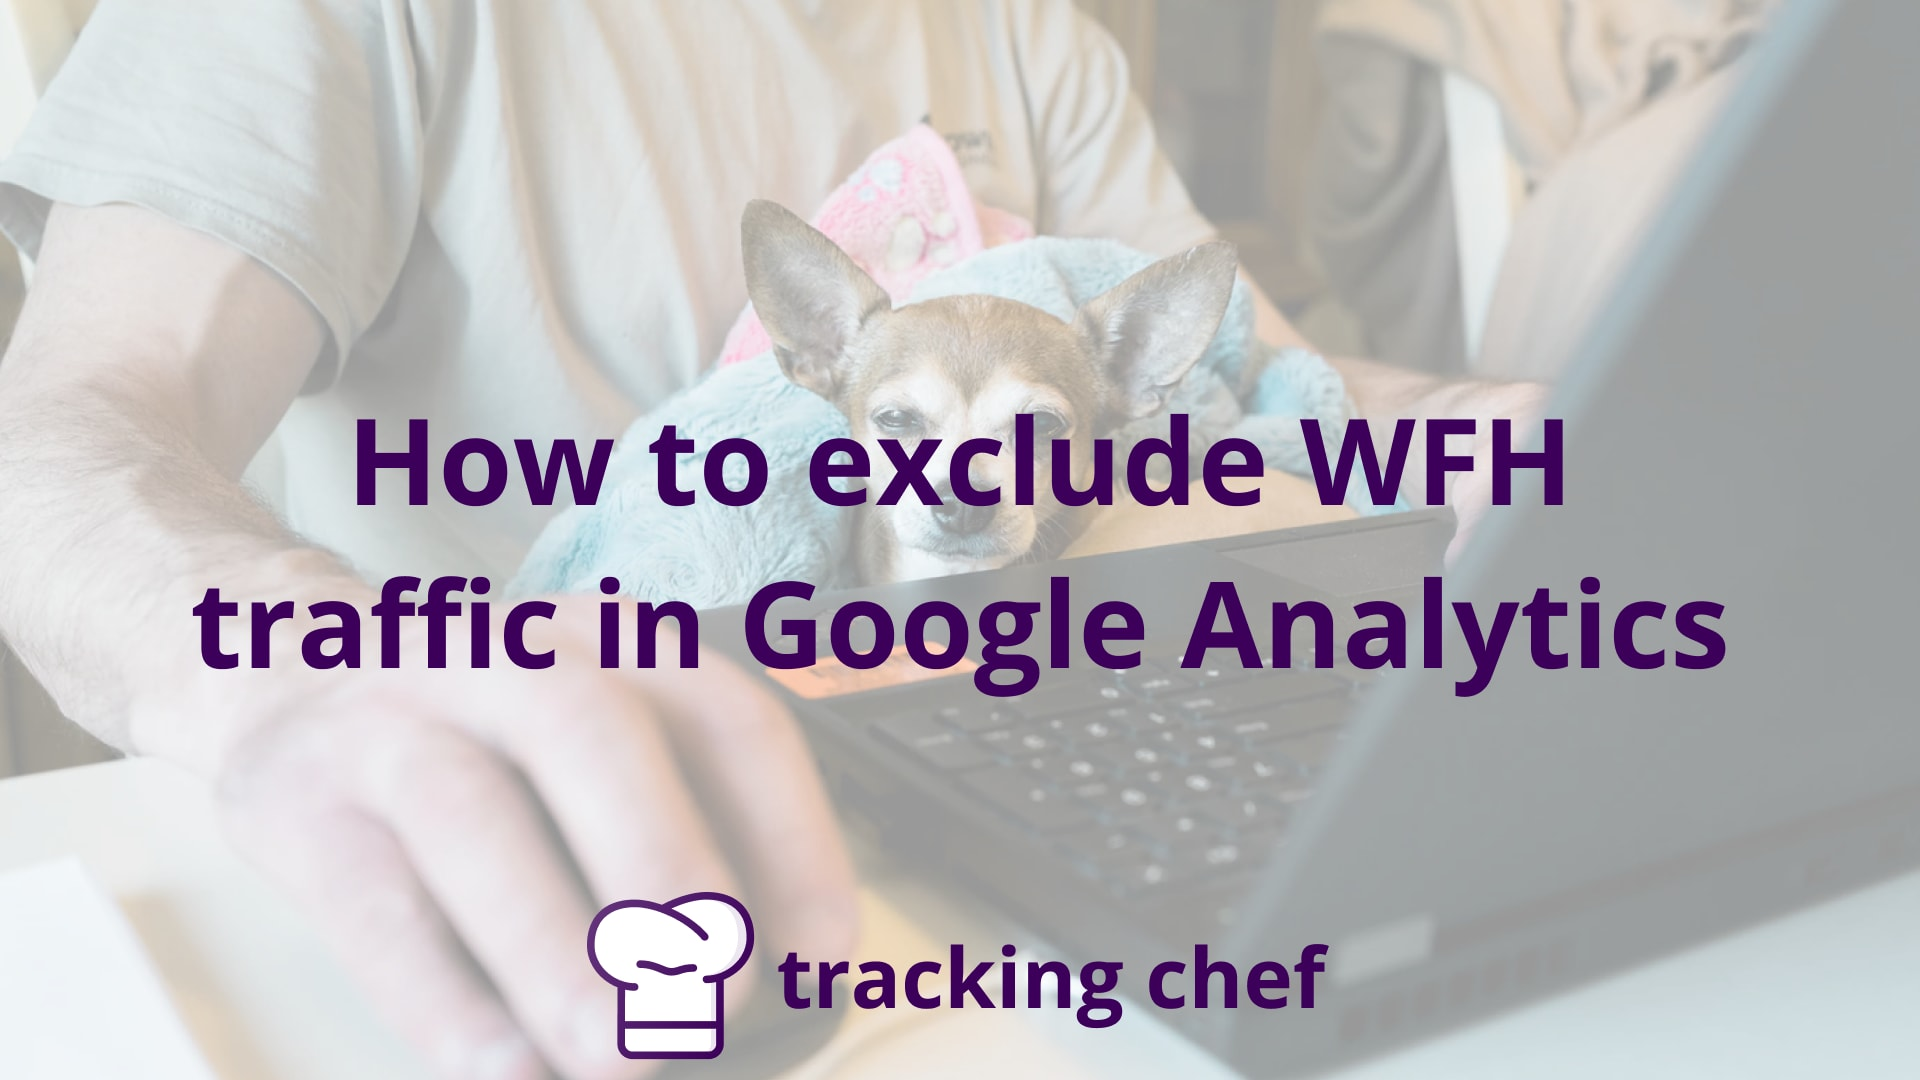 How to exclude WFH traffic in Google Analytics (Expert roundup)